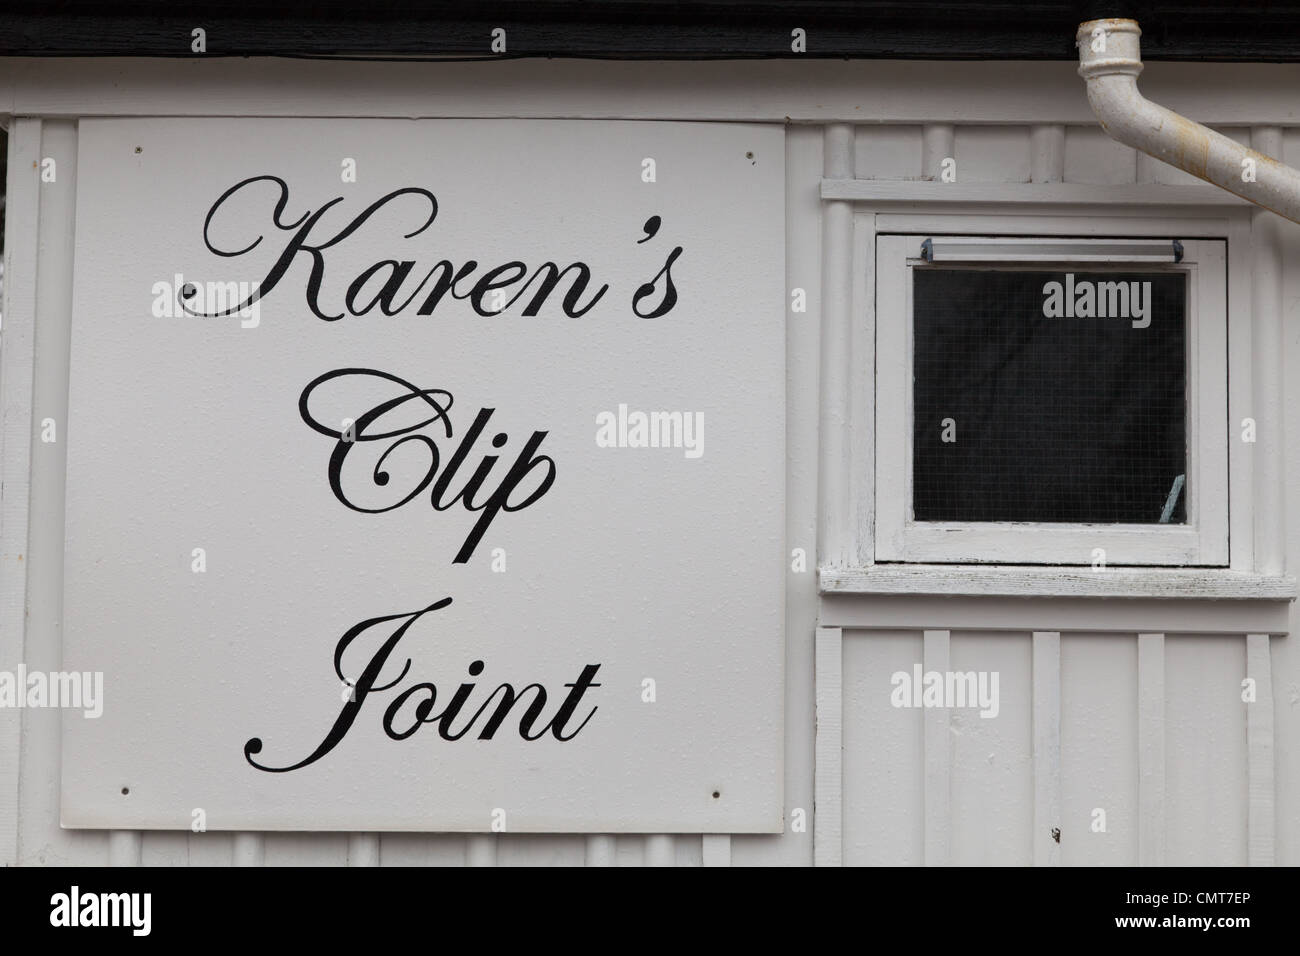 A witty amusing play on words for a hairdressers by Strathcarron staion, Wester Ross, Scottish highlands. - Stock Image